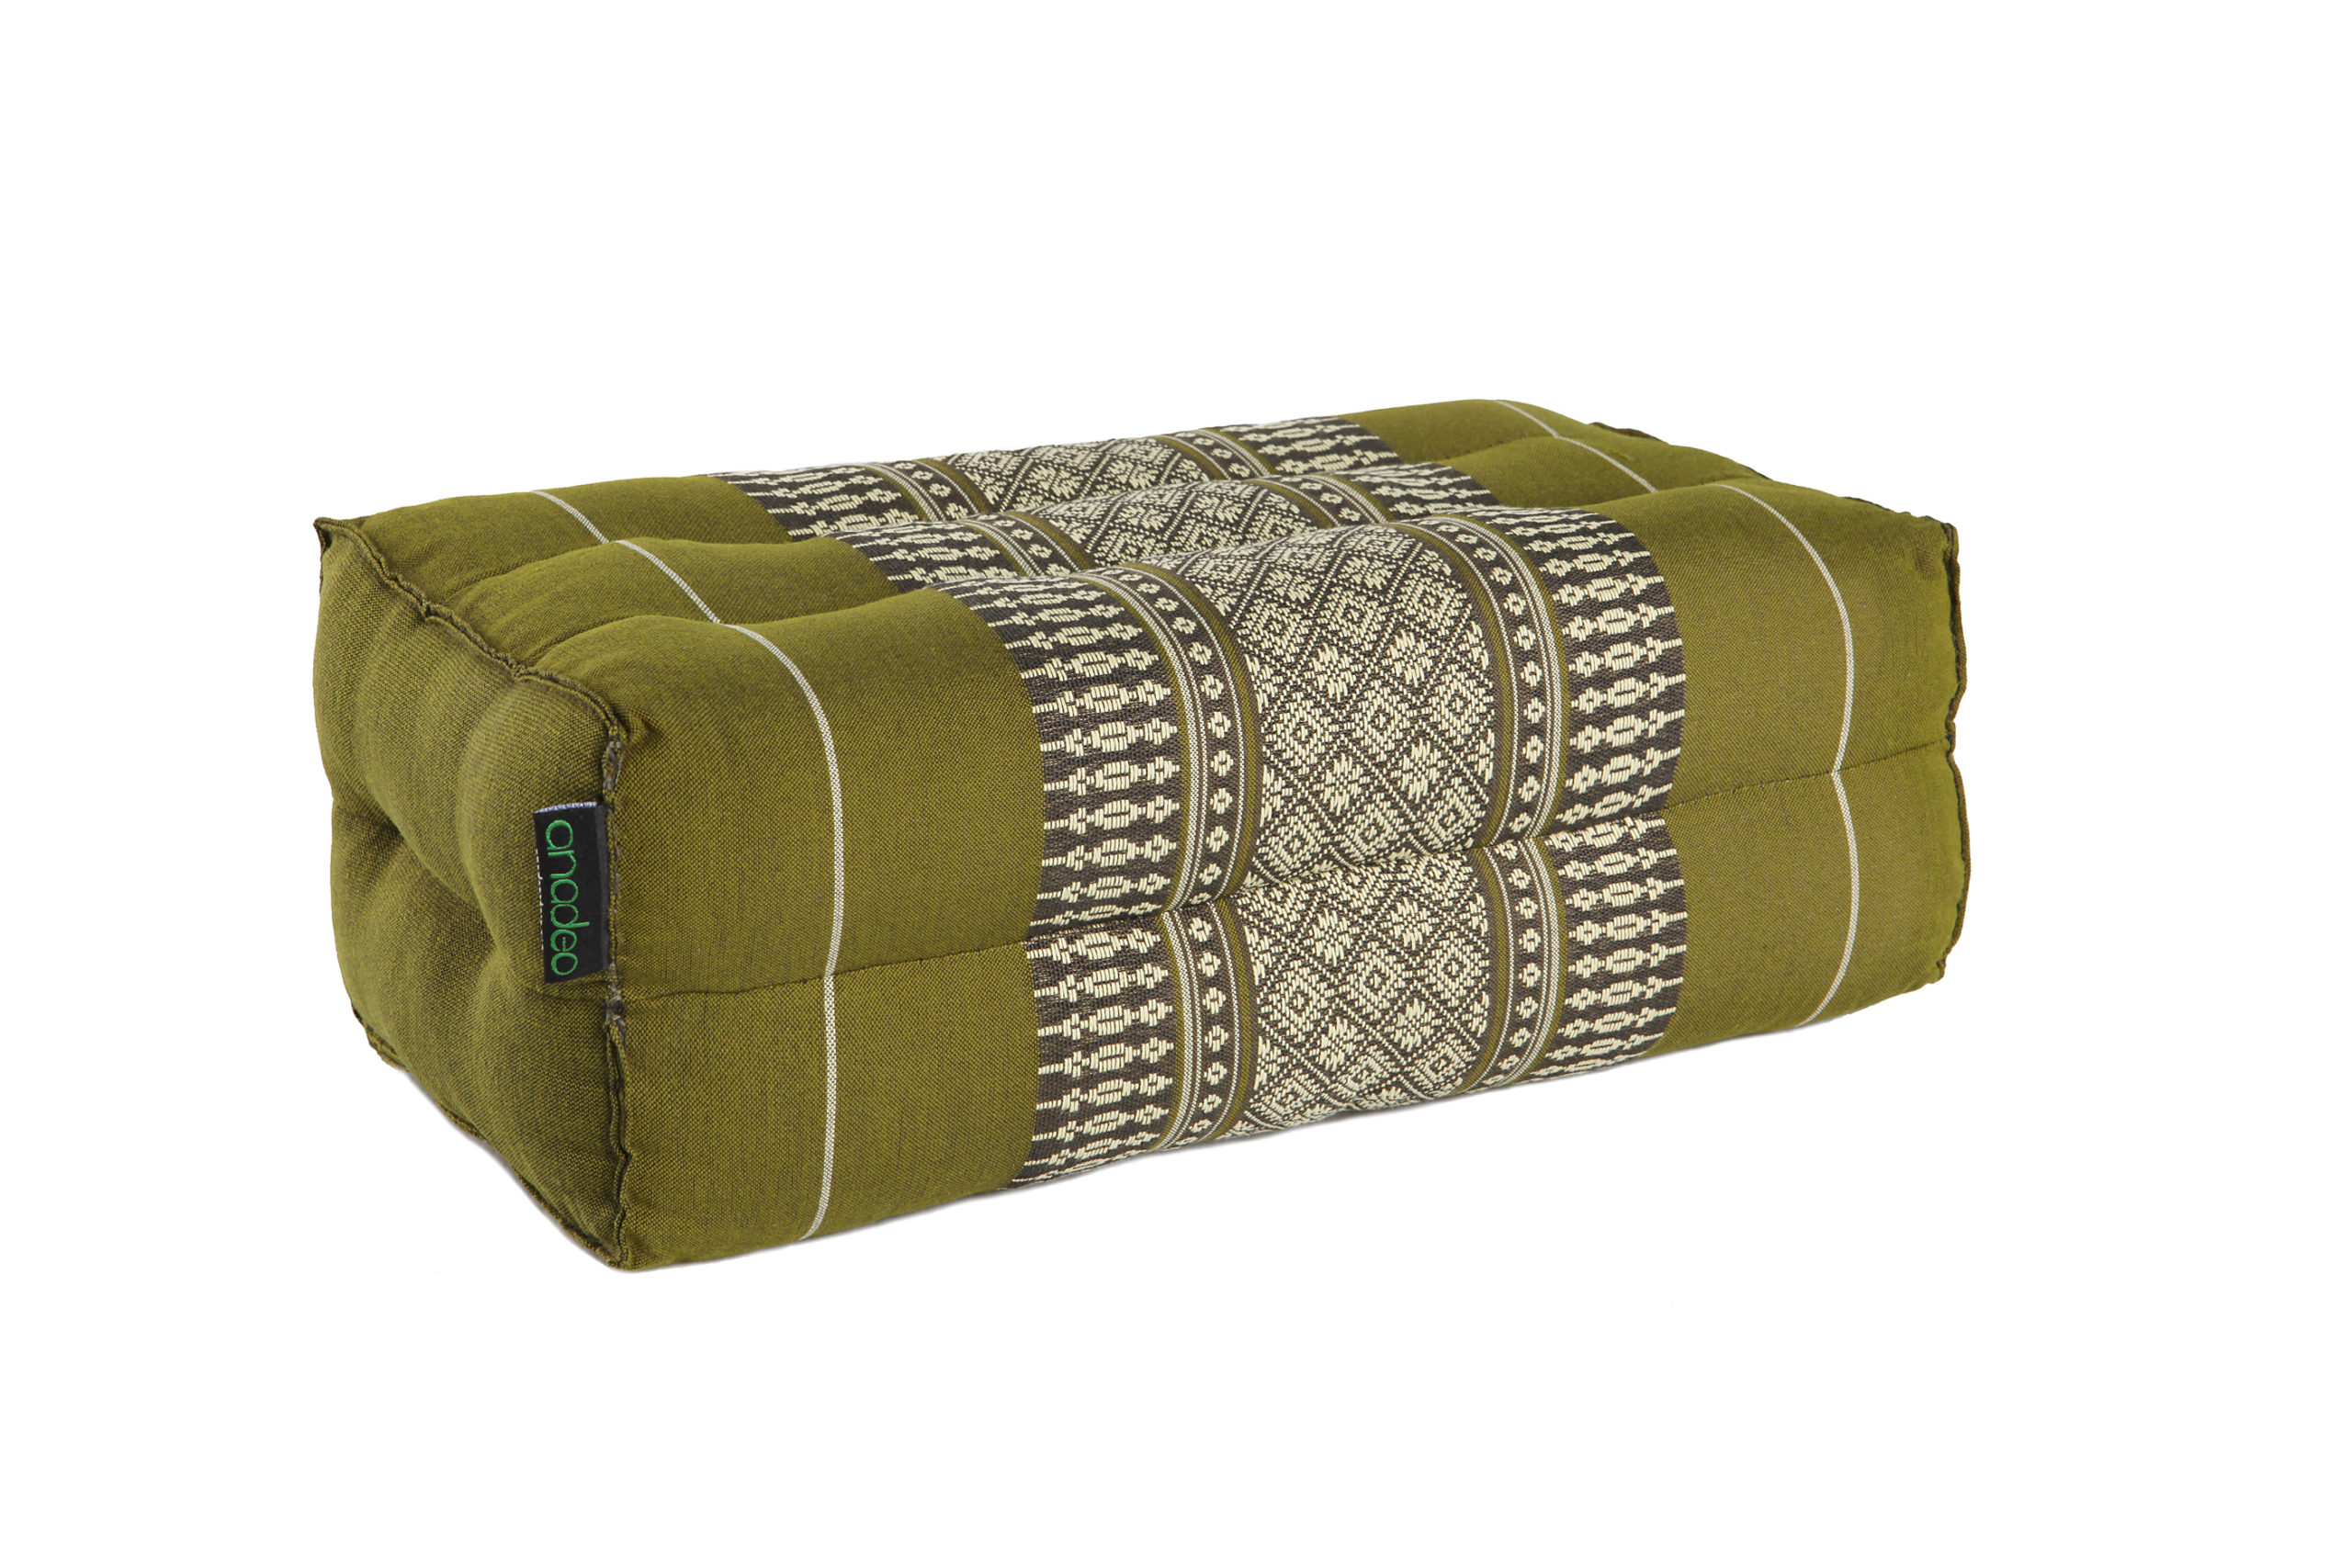 anadeo-standard yoga cushion-bamboo